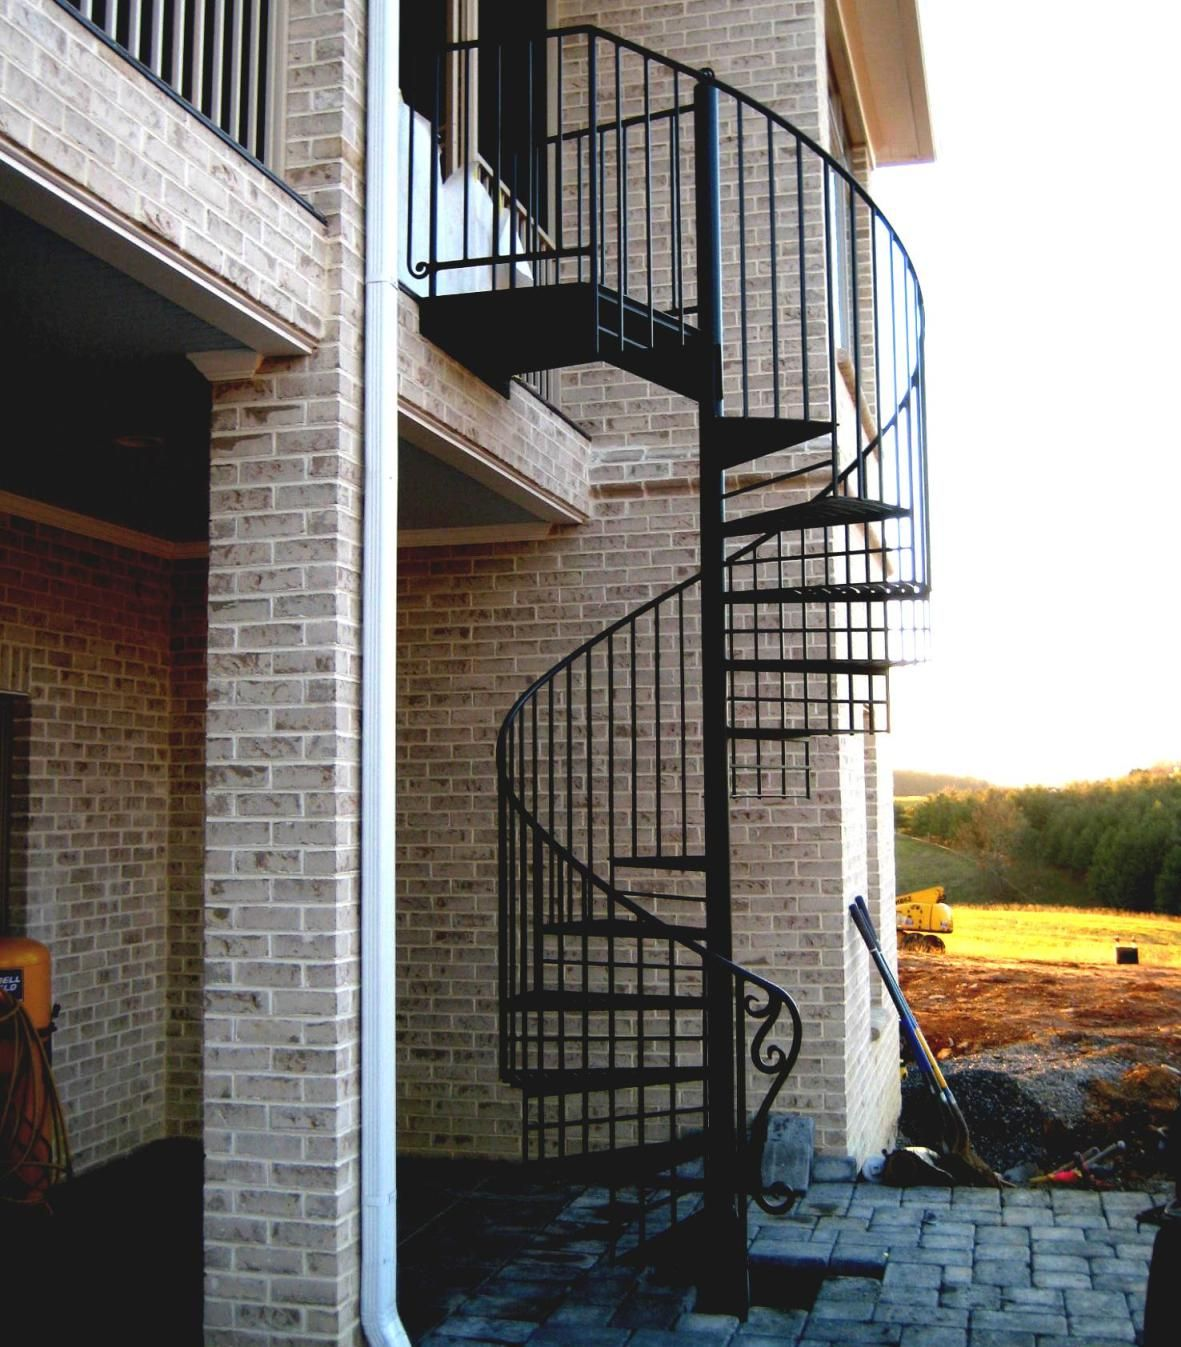 Outdoor Steel Spiral Staircase The Best Design For Your Home Staircase Outdoor Spiral Staircase Outdoor Staircase Metal